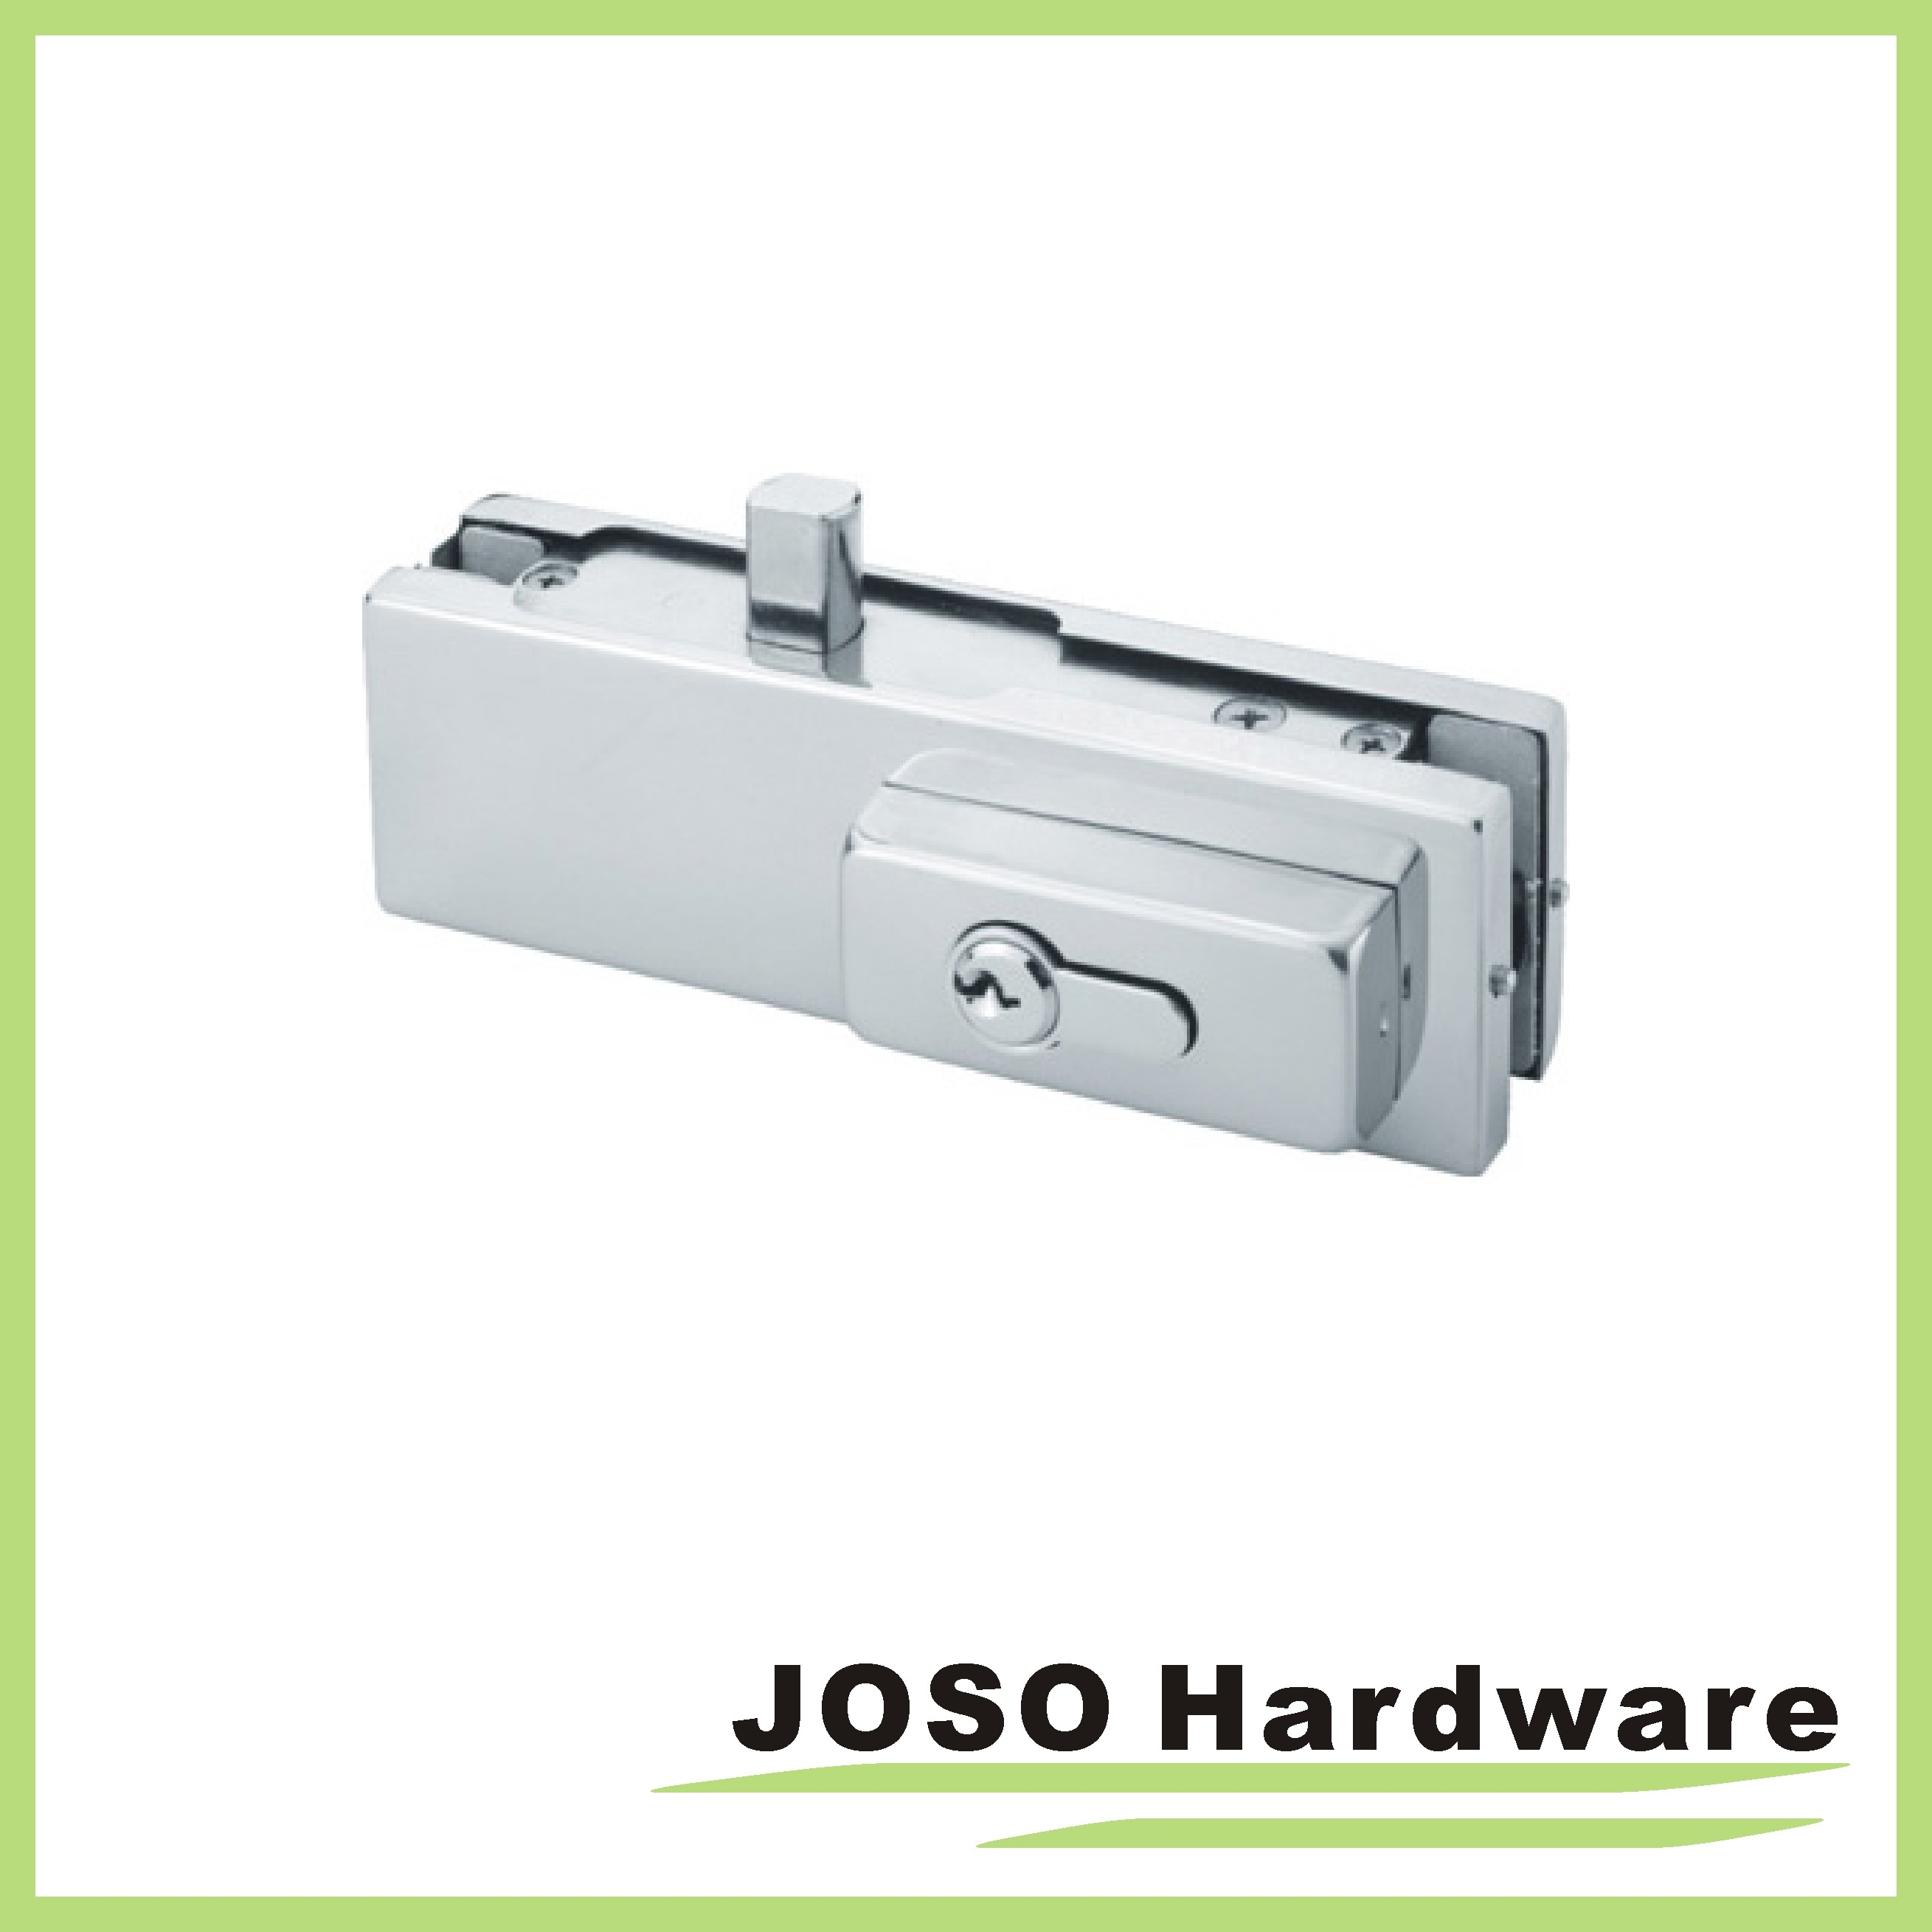 Patch fittings typical application for glass door with patch fittings - Dorma Glass Door Complete Bottom Lock Patch Fitting Including Cylinder